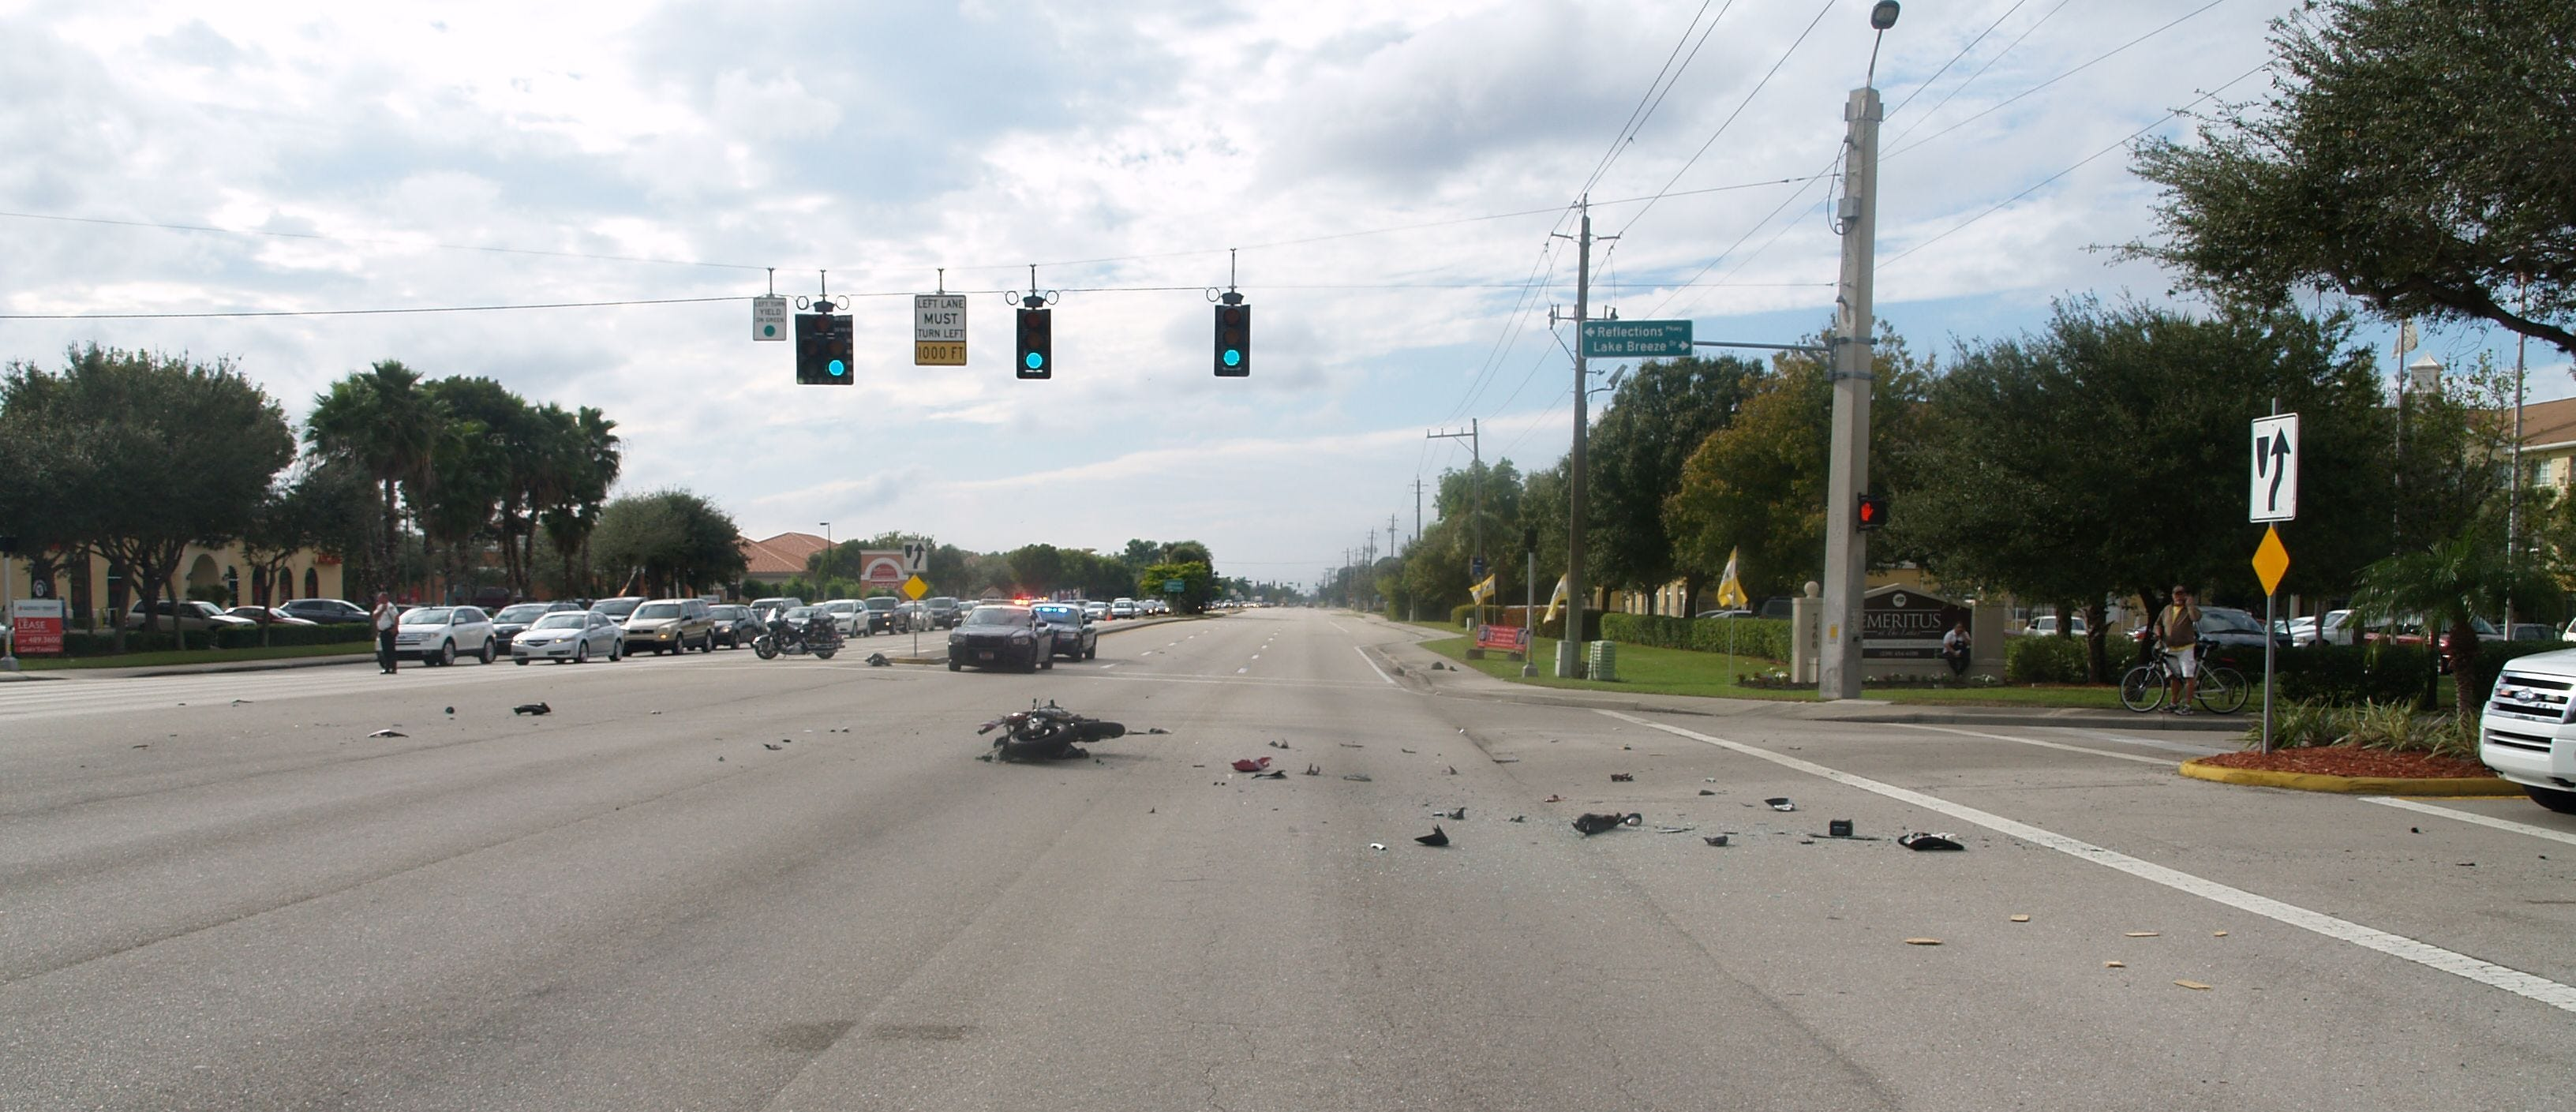 The scene from the Jan. 9, 2014 crash that killed 17-year-old Sean Parke.